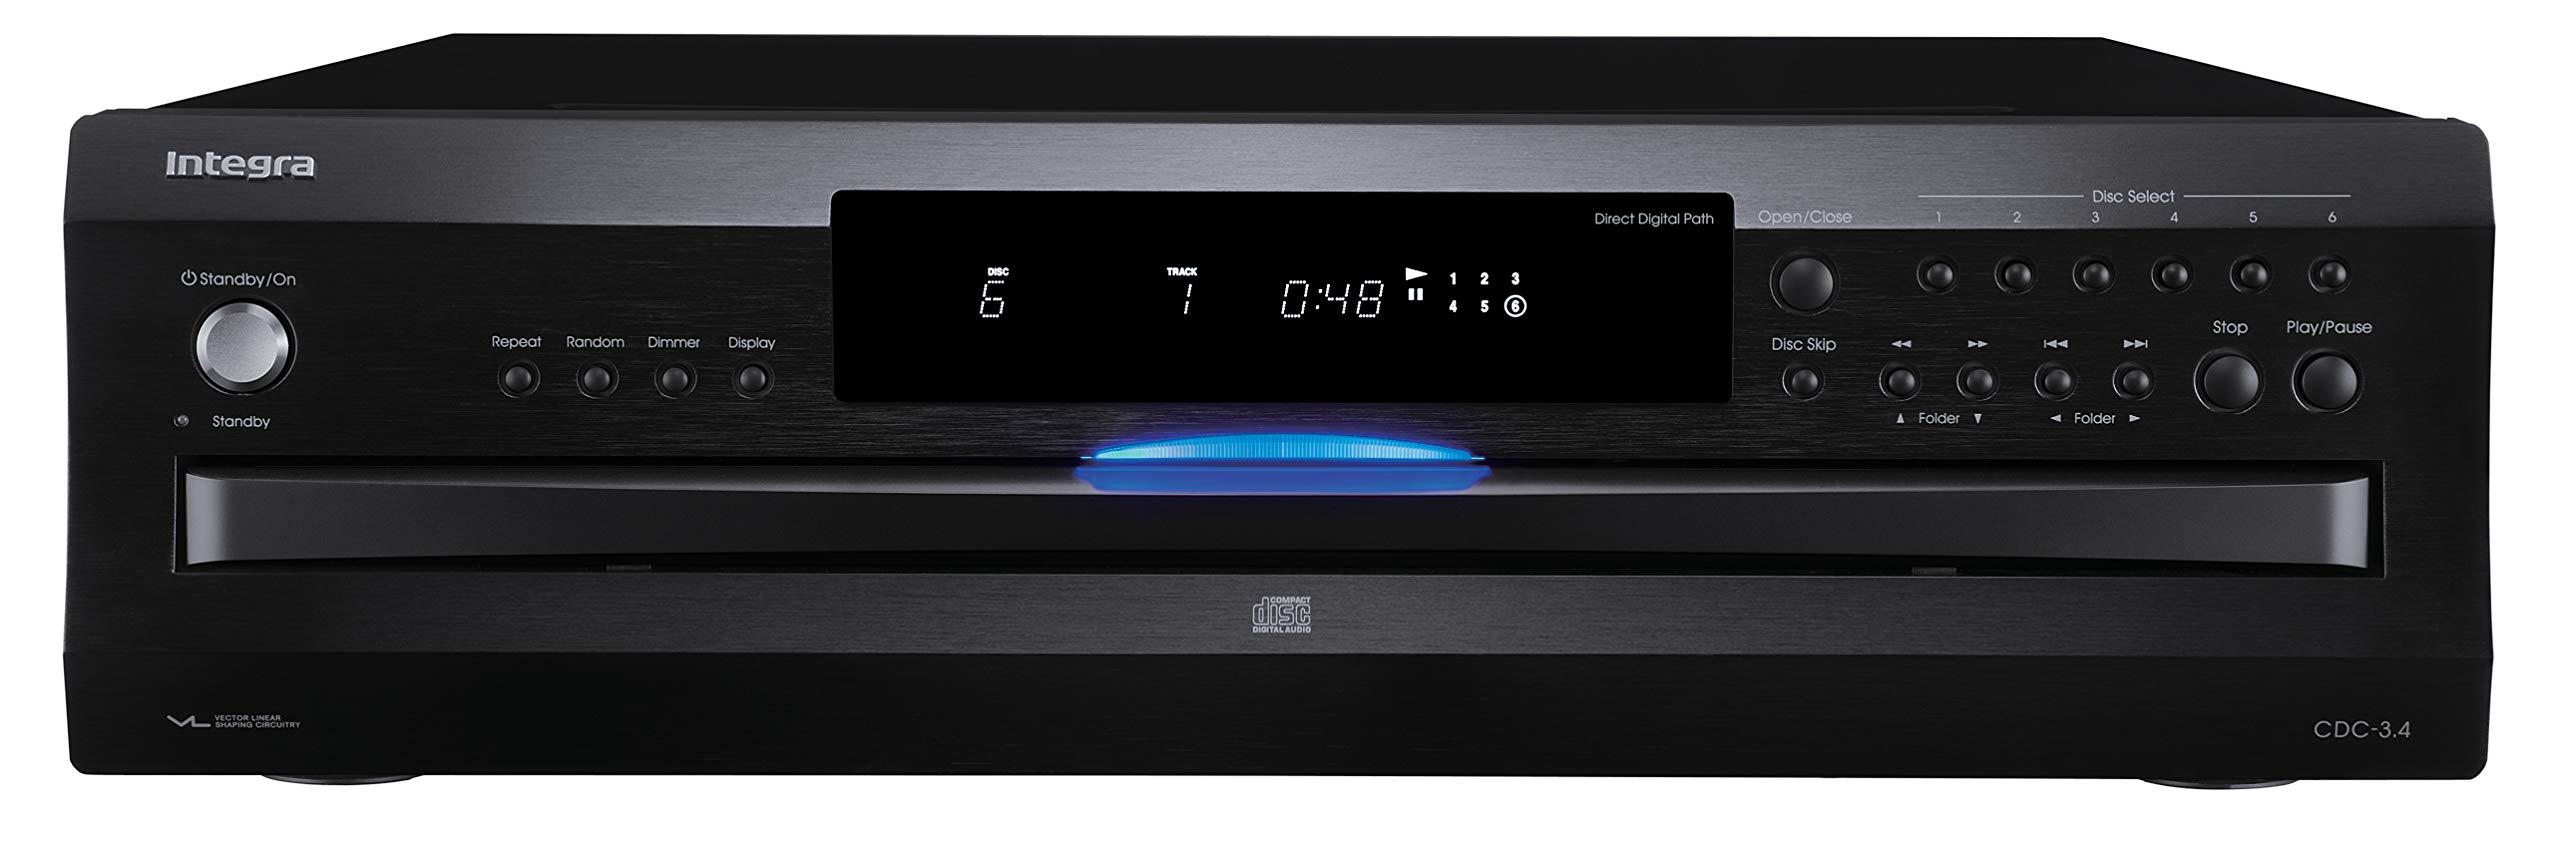 Integra Premium 6 Disc CD Carousel Changer Black (CDC-3.4)